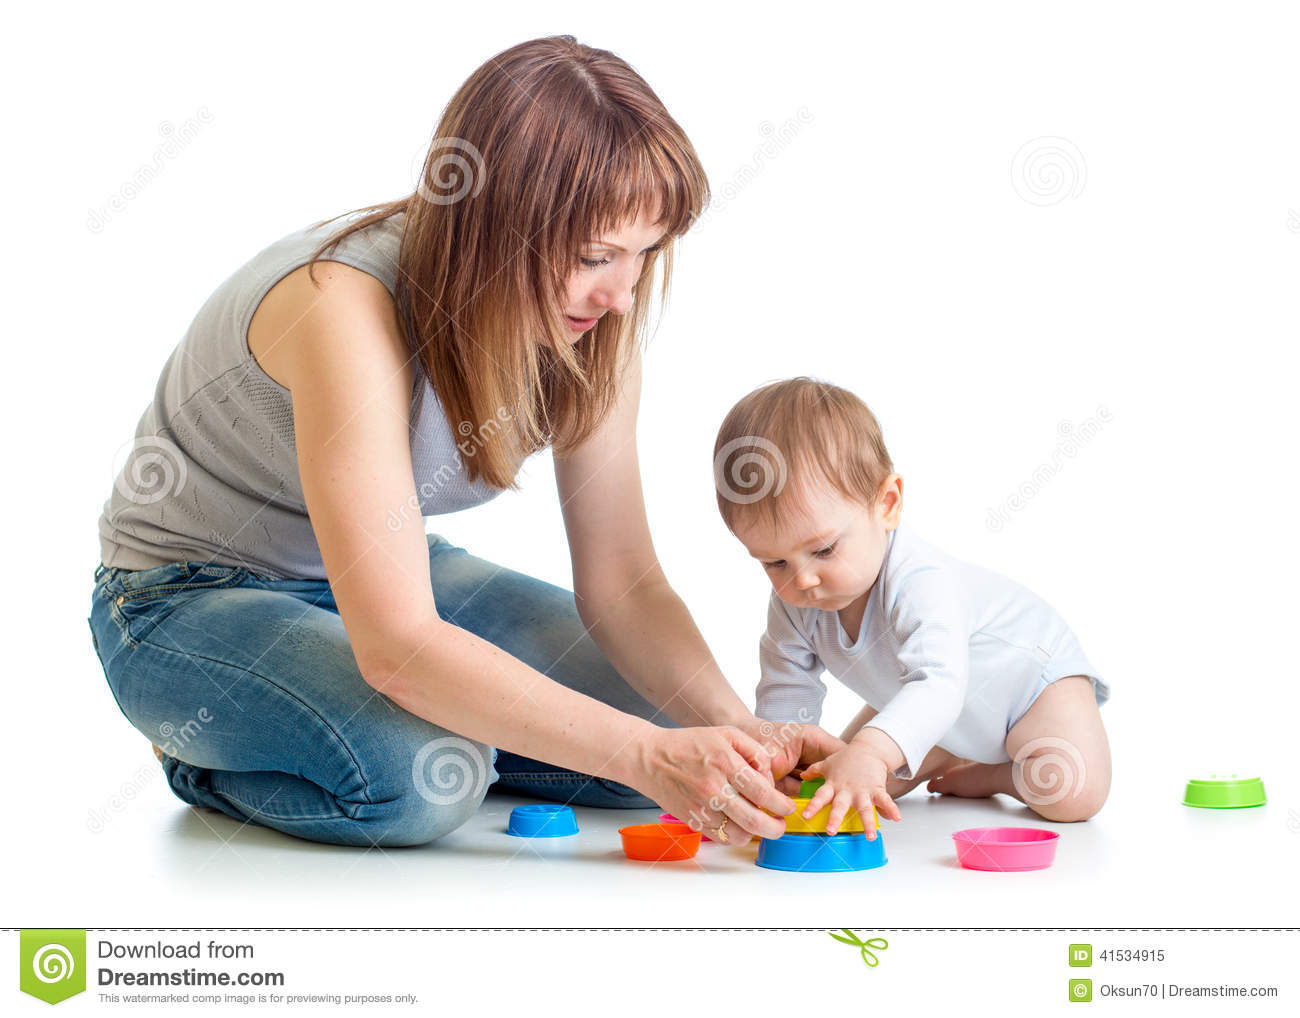 Mom Play Toys : Child and mom play with block toys stock image